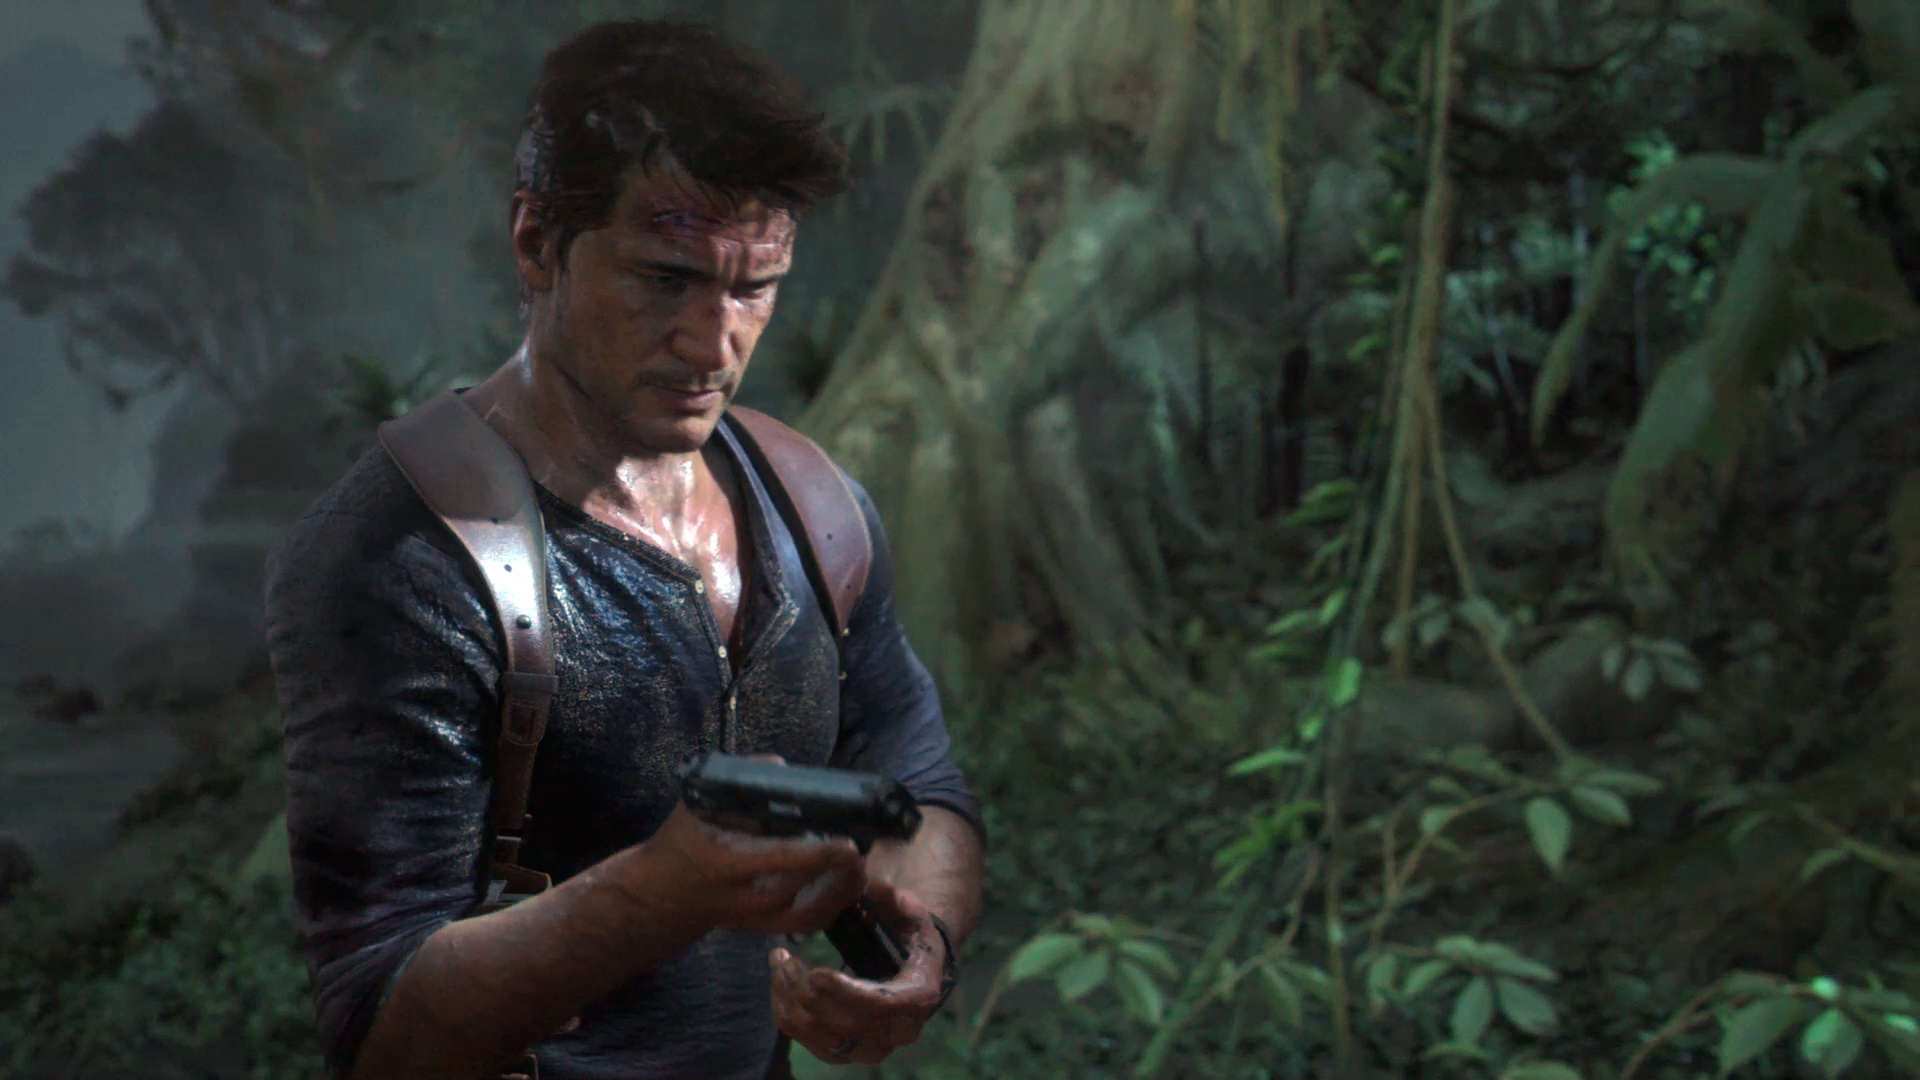 uncharted 4 Take A Look Behind The Scenes Of Uncharted 4 In New Video